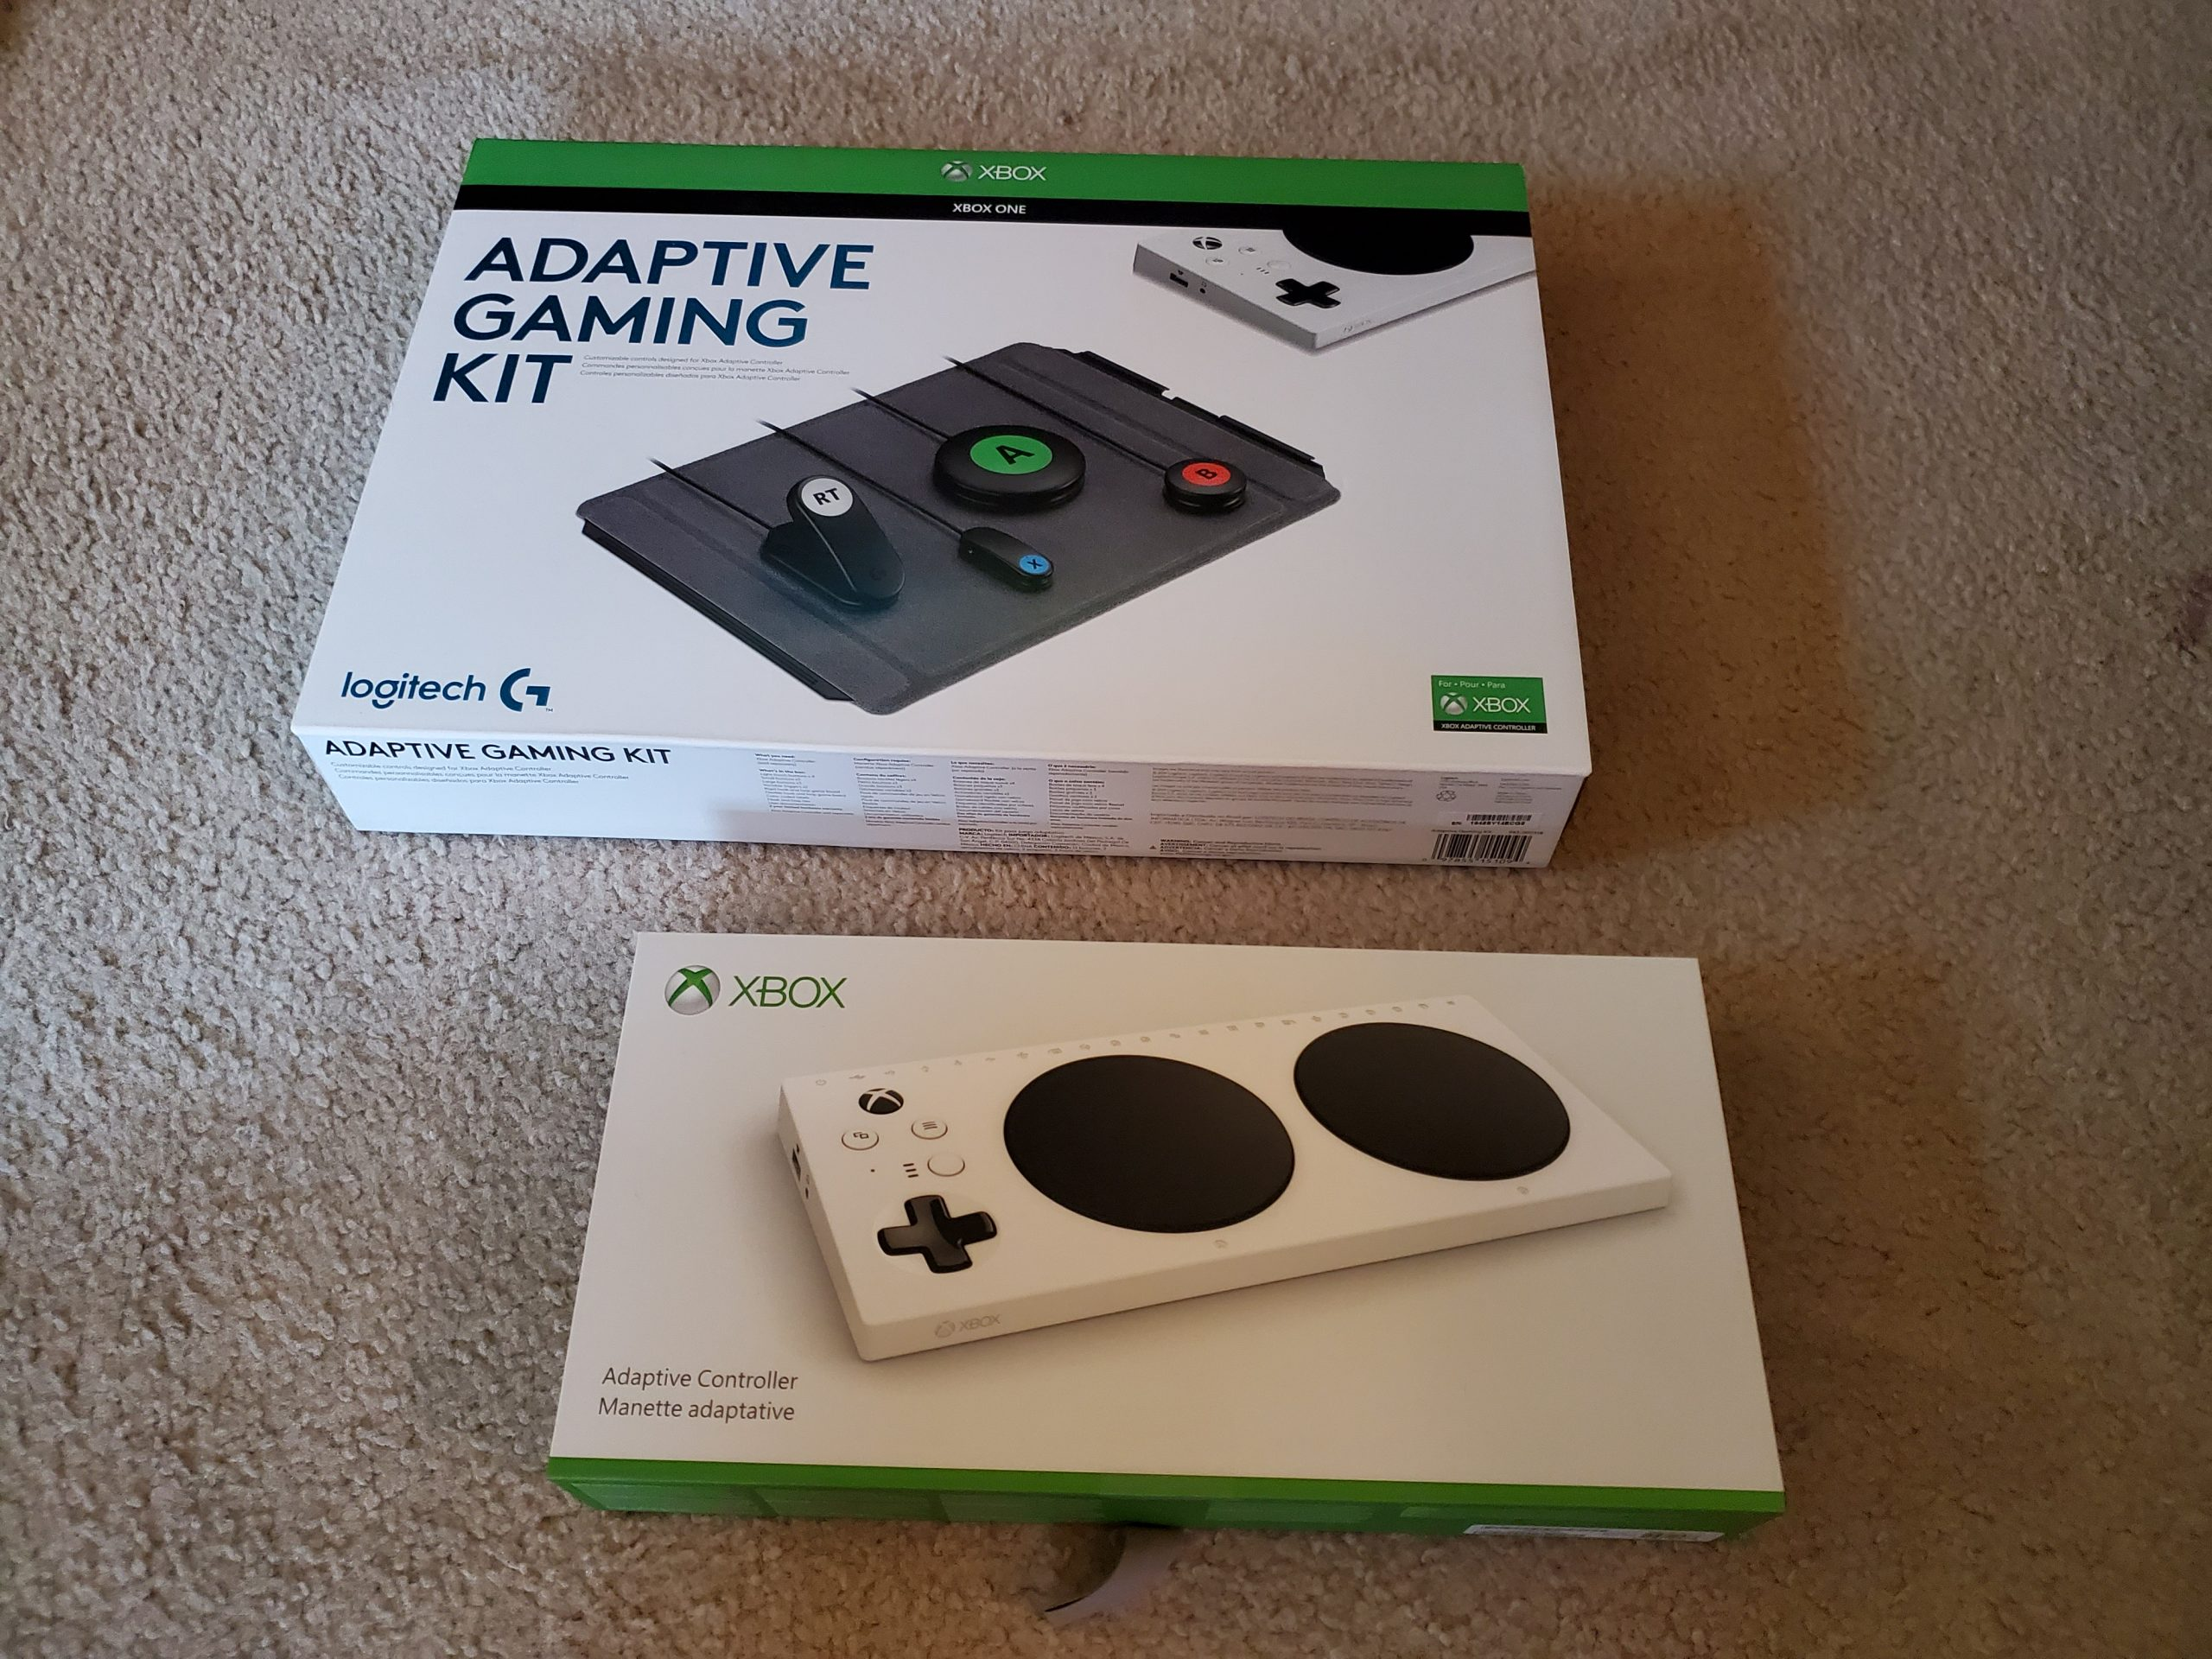 Xbox Adaptive Controller and Logitech kit